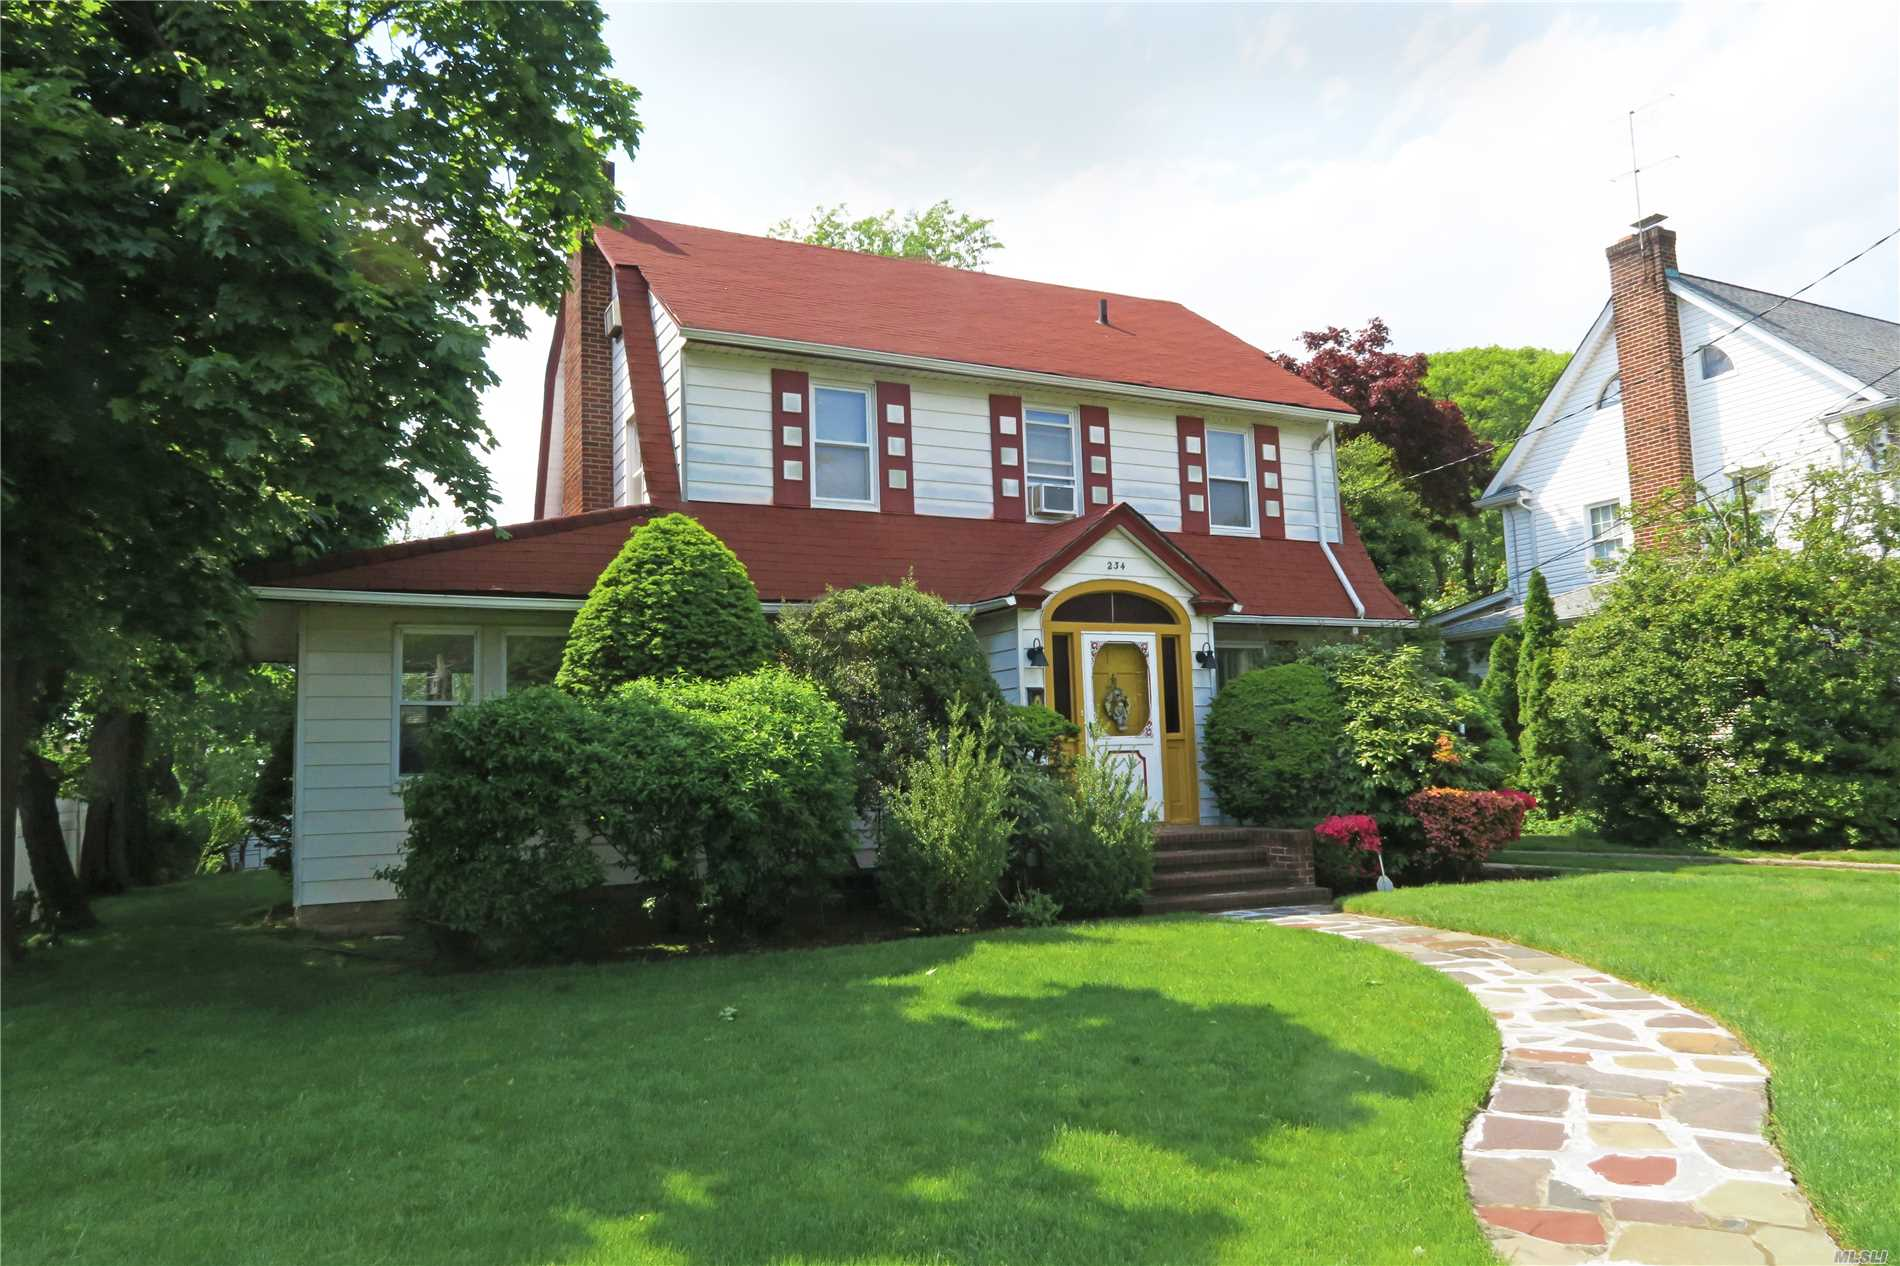 Grand Center Hall Colonial With 3 Bedrooms 2.5 Baths On A Beautiful, Private Oversized Property. Spacious Living Area Includes Living Room w/ Wood Burning Fireplace, Formal Dining Room, Sunroom/Family Room With Skylight, Eat In Kitchen .5 Bath. Second Floor Large Master Bedroom/Full Master Bath, 2 Bedrooms And Full Bath, Stairs To Fully Finished Attic w/ Heating and Cooling, Finished Basement, Great For Entertaining Inside And Out. Room For All!  Central Station Alarm. Near Park, Schools, Shopping, Transportation. Taxes Are Being Grieved